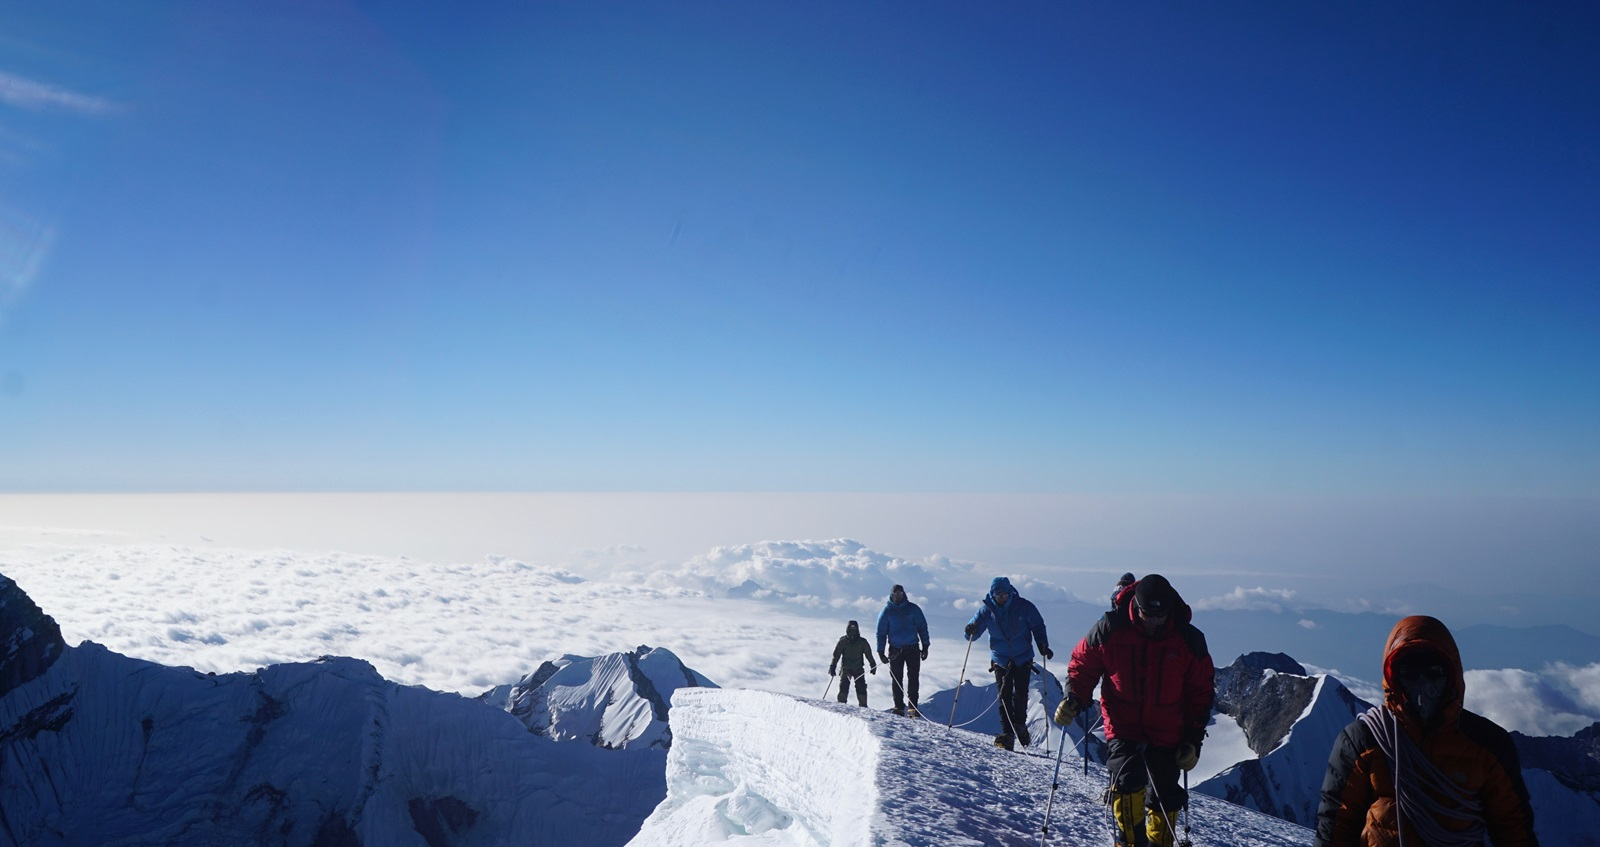 Members of the Mission Himalaya team approaching the summit of Mera Peak